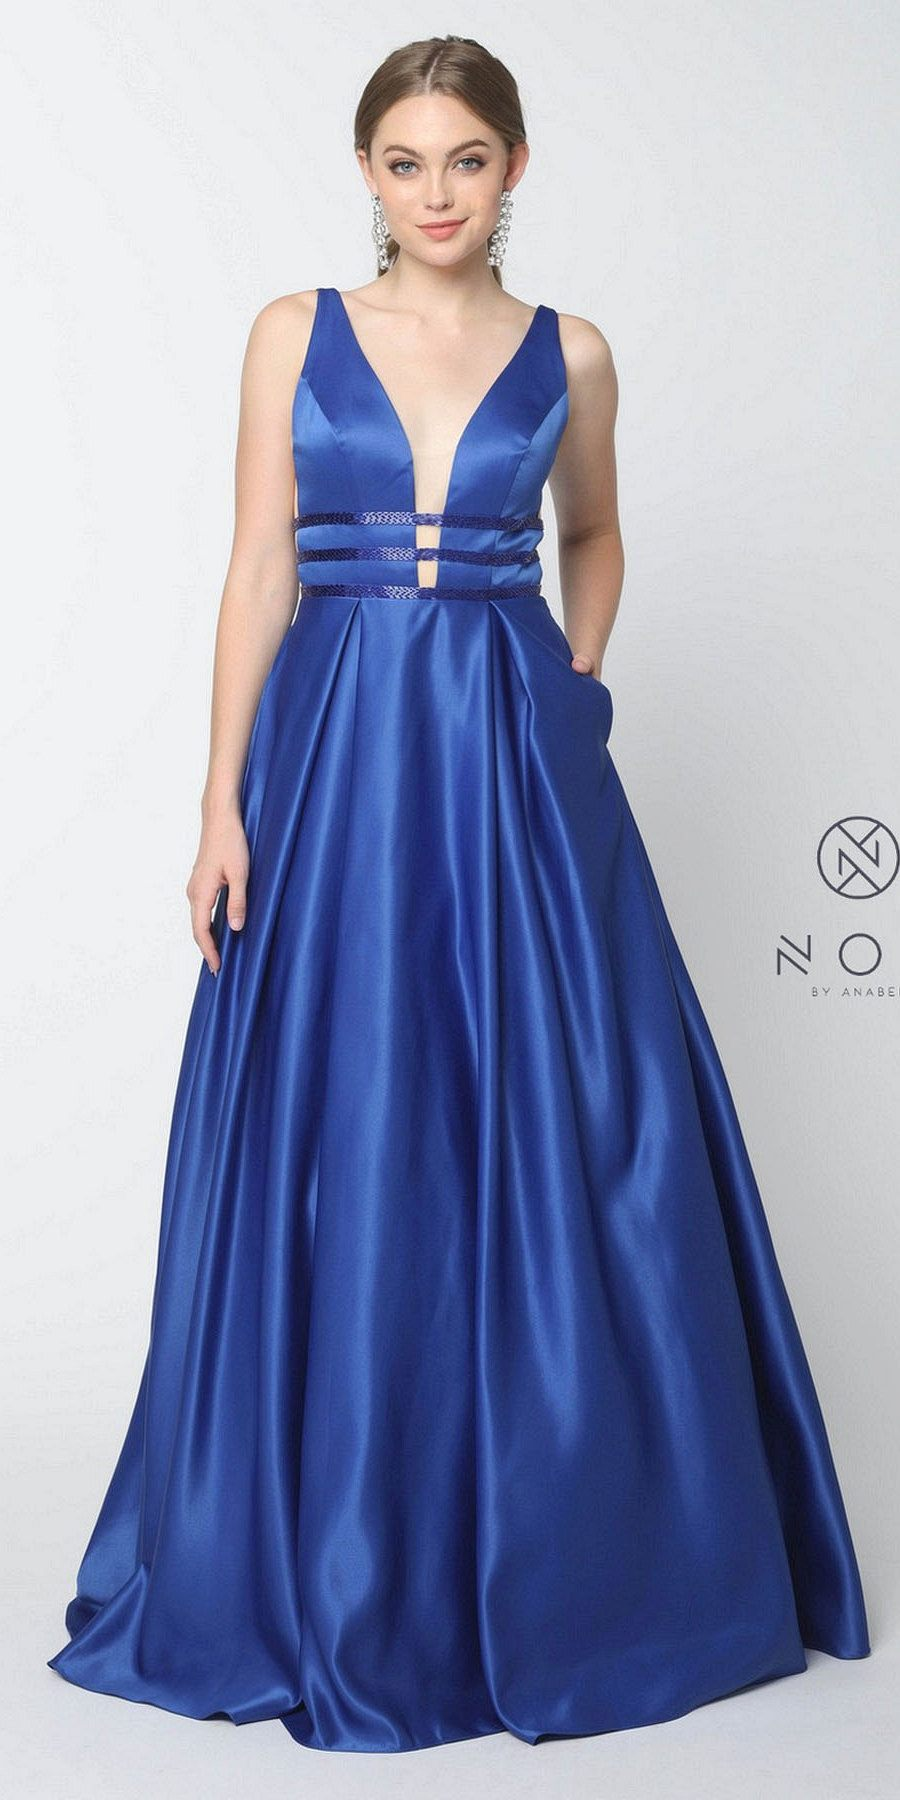 9599ebd258f Nox Anabel M130 Royal Blue V-Neck Long Prom Dress Sheer Cut Out with  Pockets ...